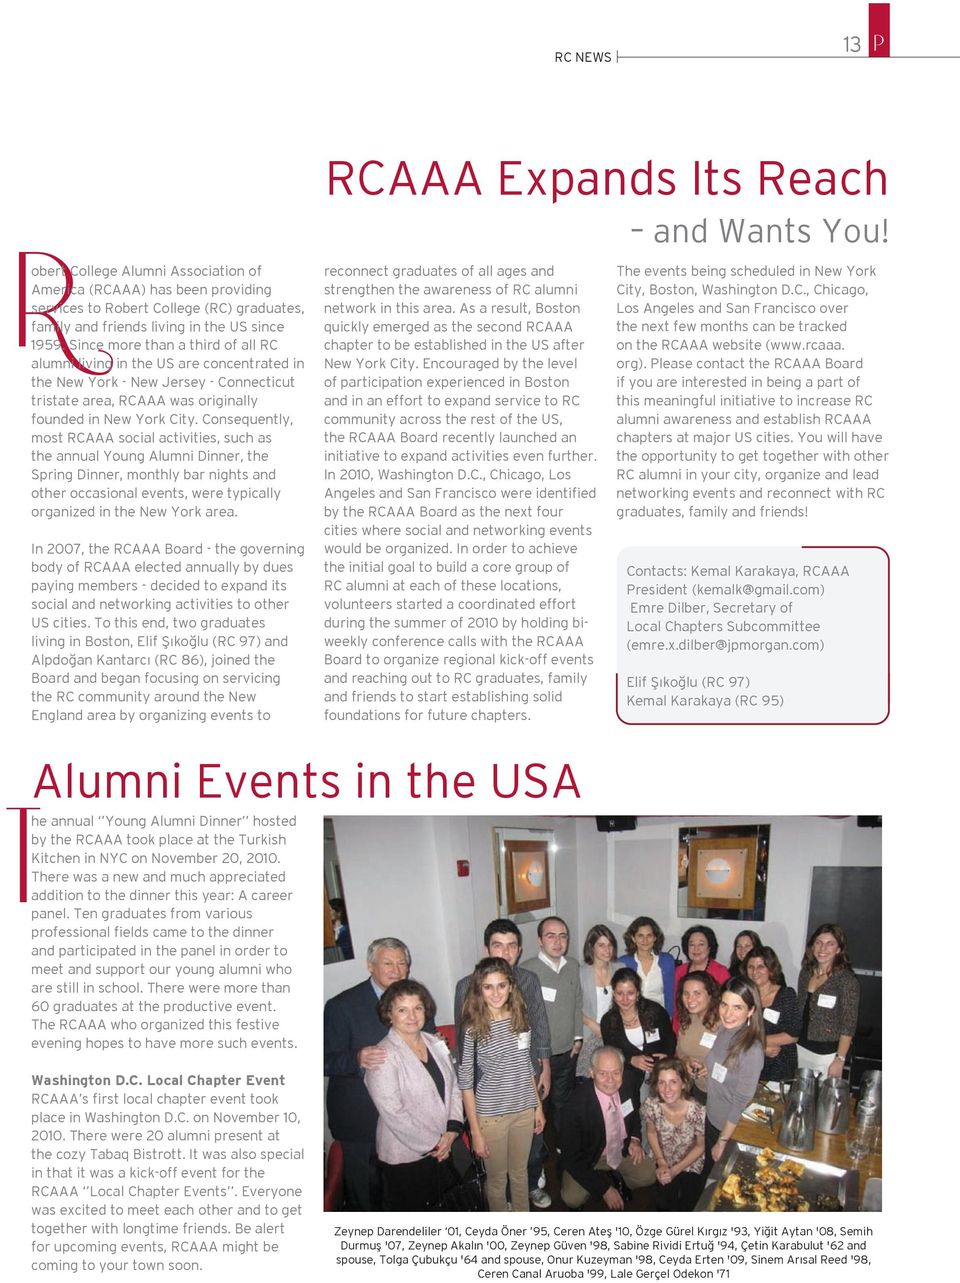 Consequently, most RCAAA social activities, such as the annual Young Alumni Dinner, the Spring Dinner, monthly bar nights and other occasional events, were typically organized in the New York area.